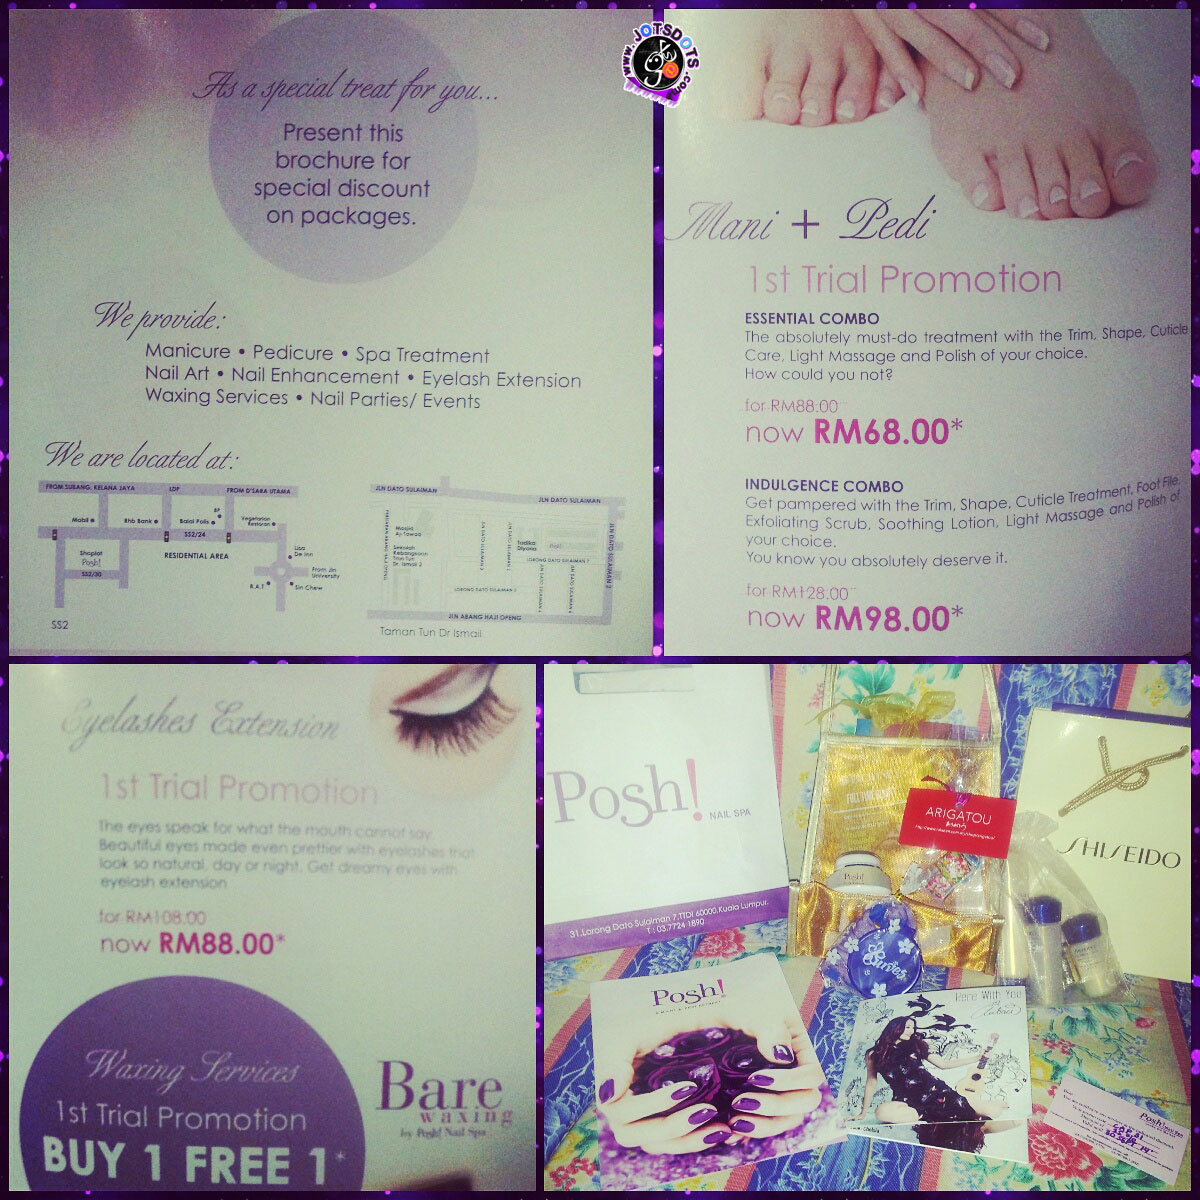 Posh-Nail-Spa-Treatment-Manicure-Pedicure-Special-Promo